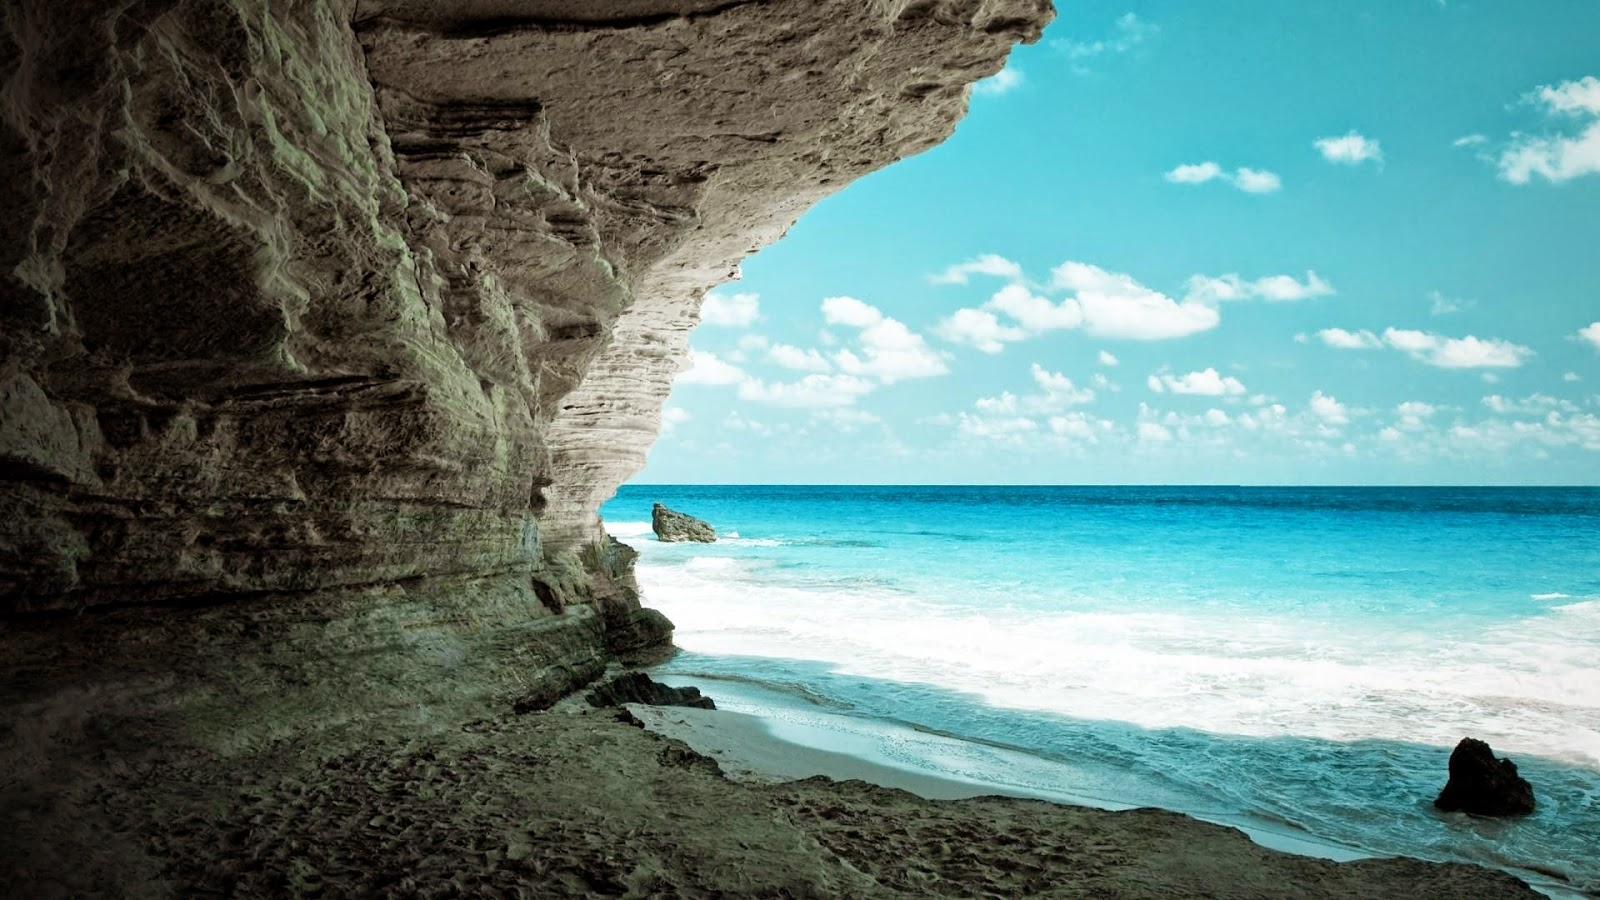 Full HD Widescreen Beach Cave Nature Backgrounds Images Wallpapers